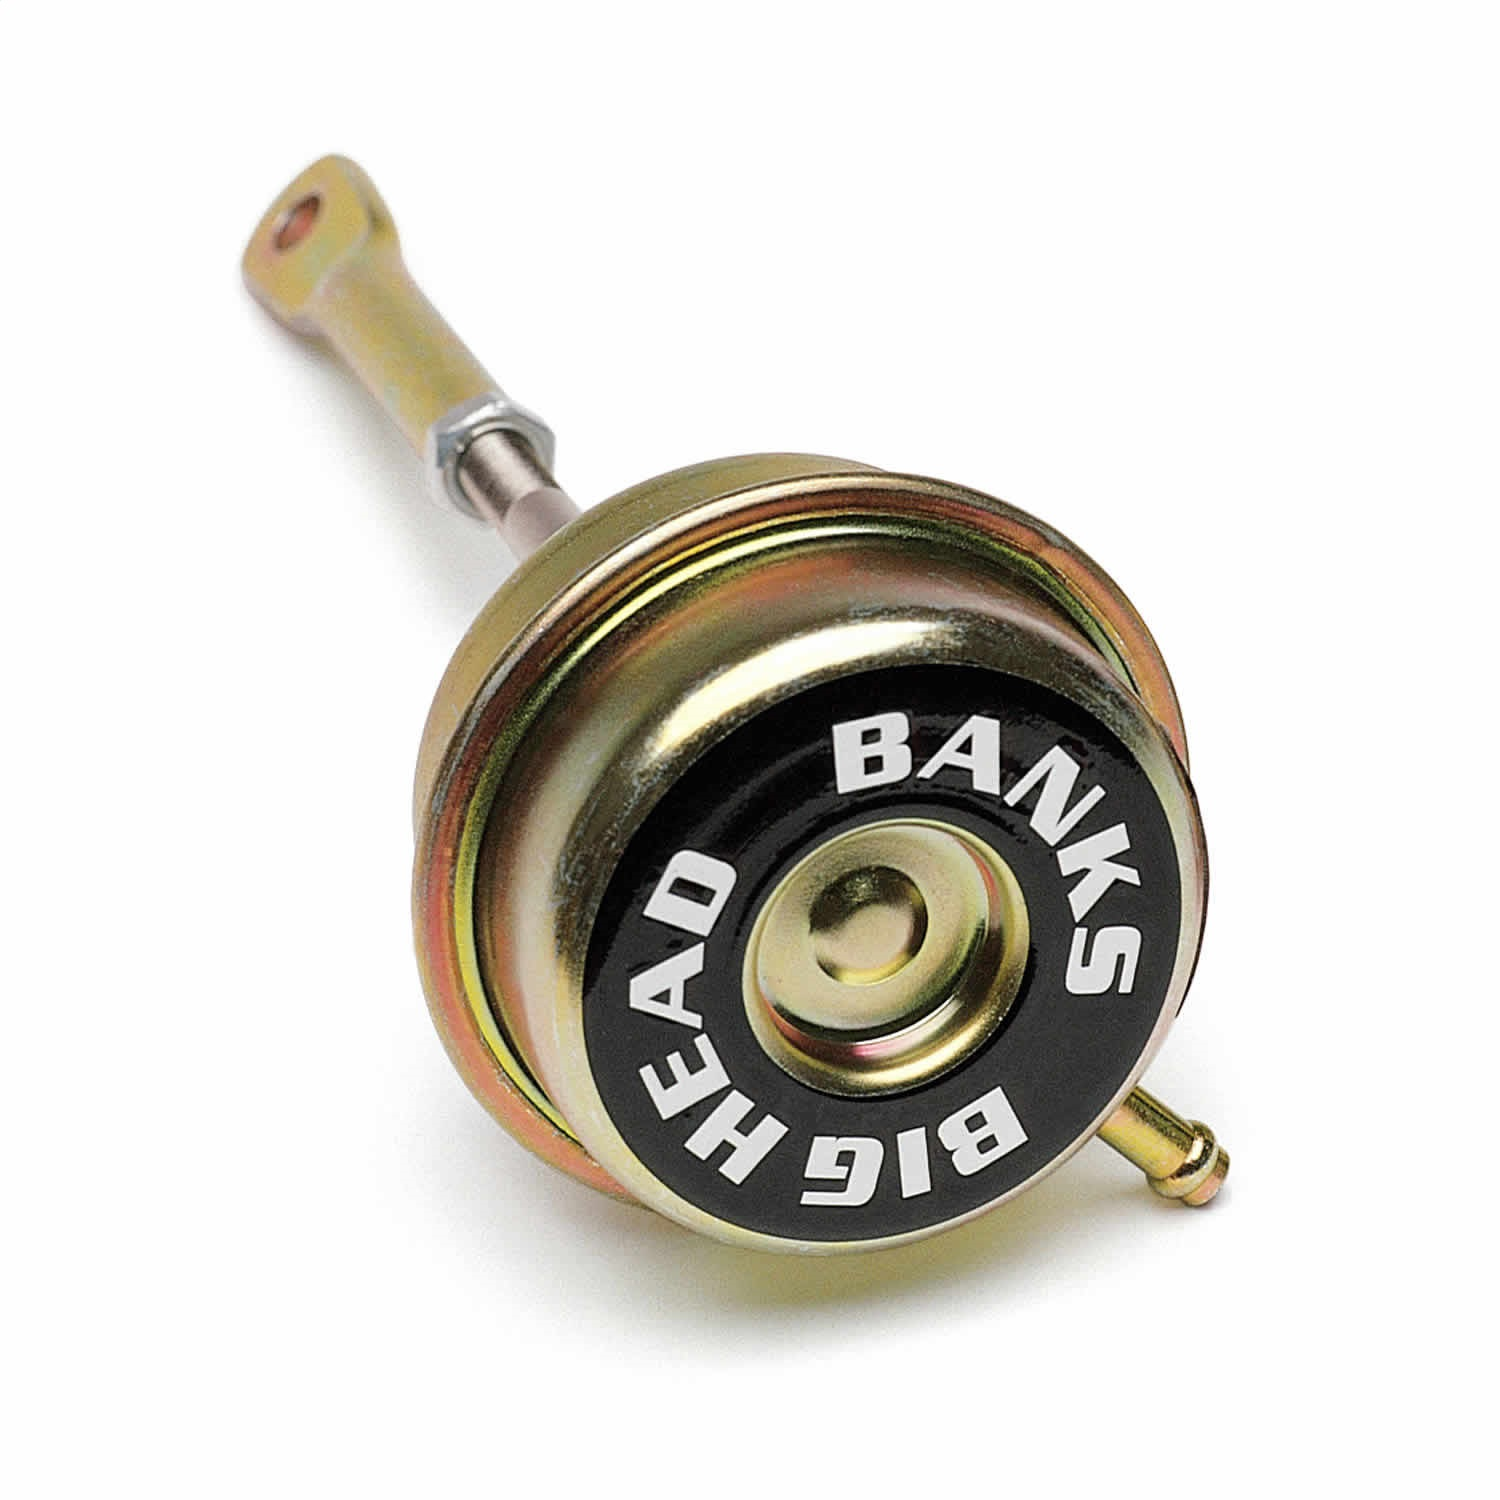 Banks Power 24329 BigHead Wastegate Actuator Fits 99-02 Ram 2500 Ram 3500